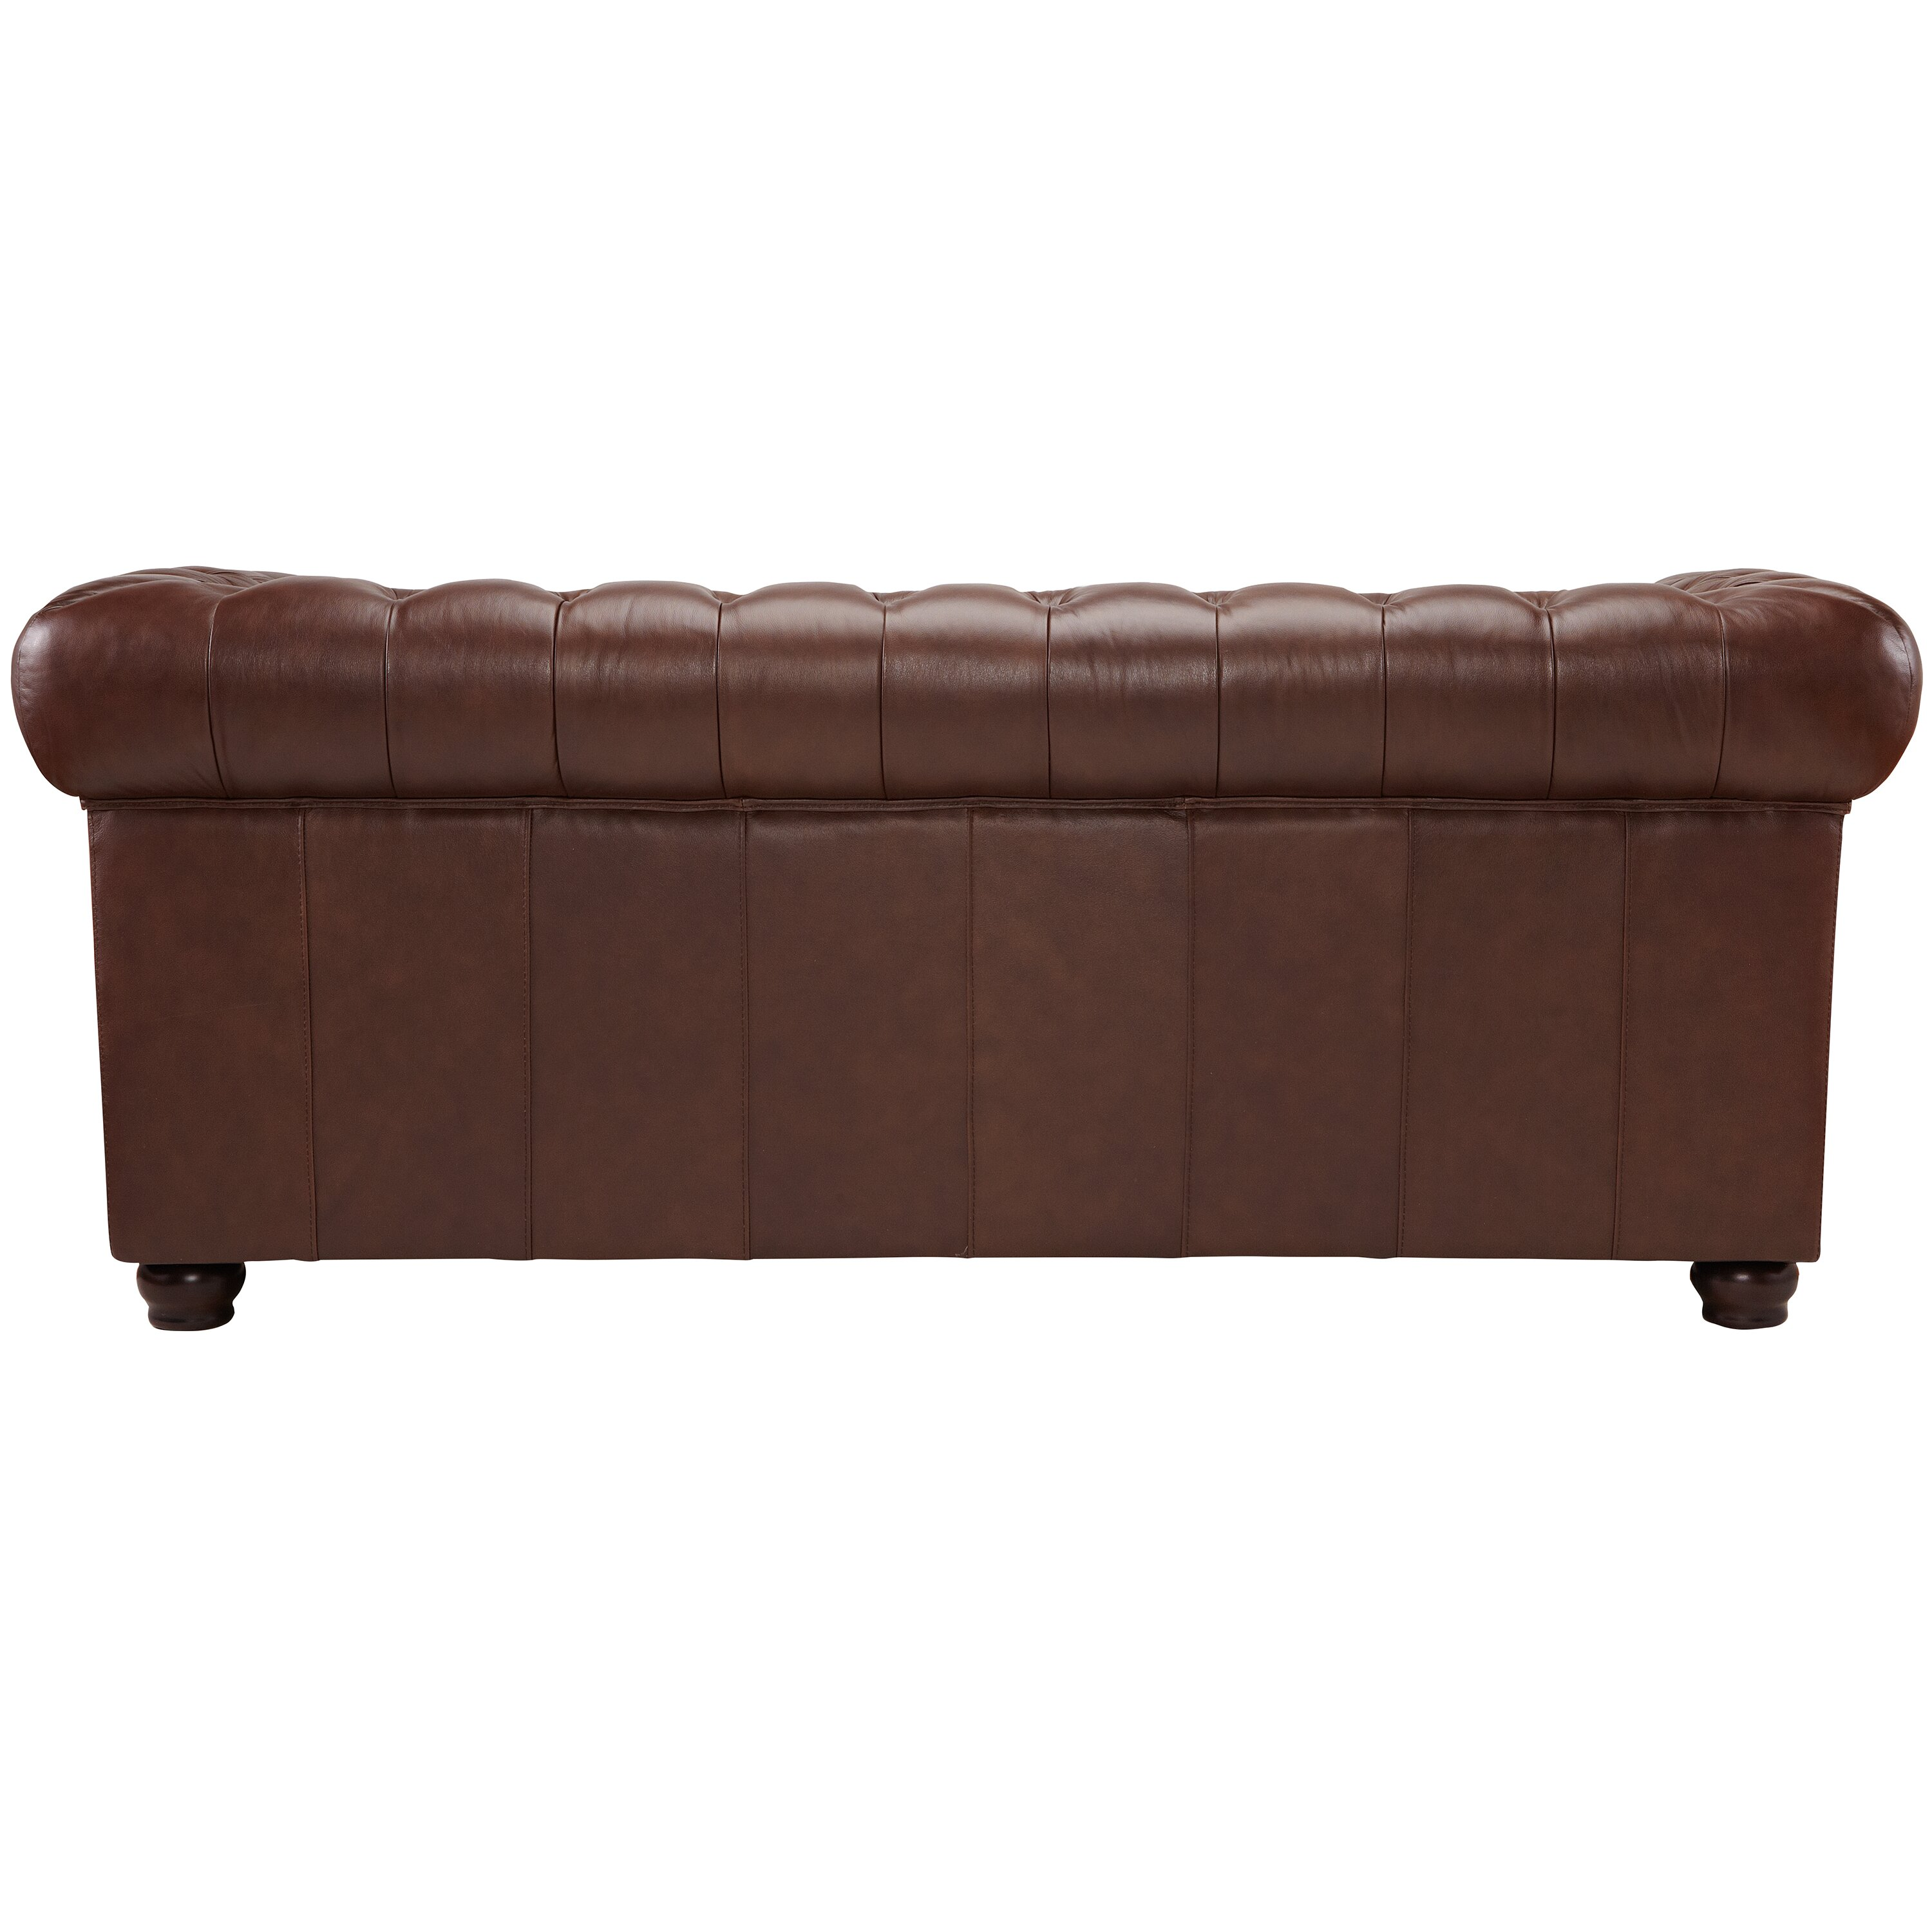 Dlnd Decoro Barrister Stationary Leather Sofa Amp Reviews